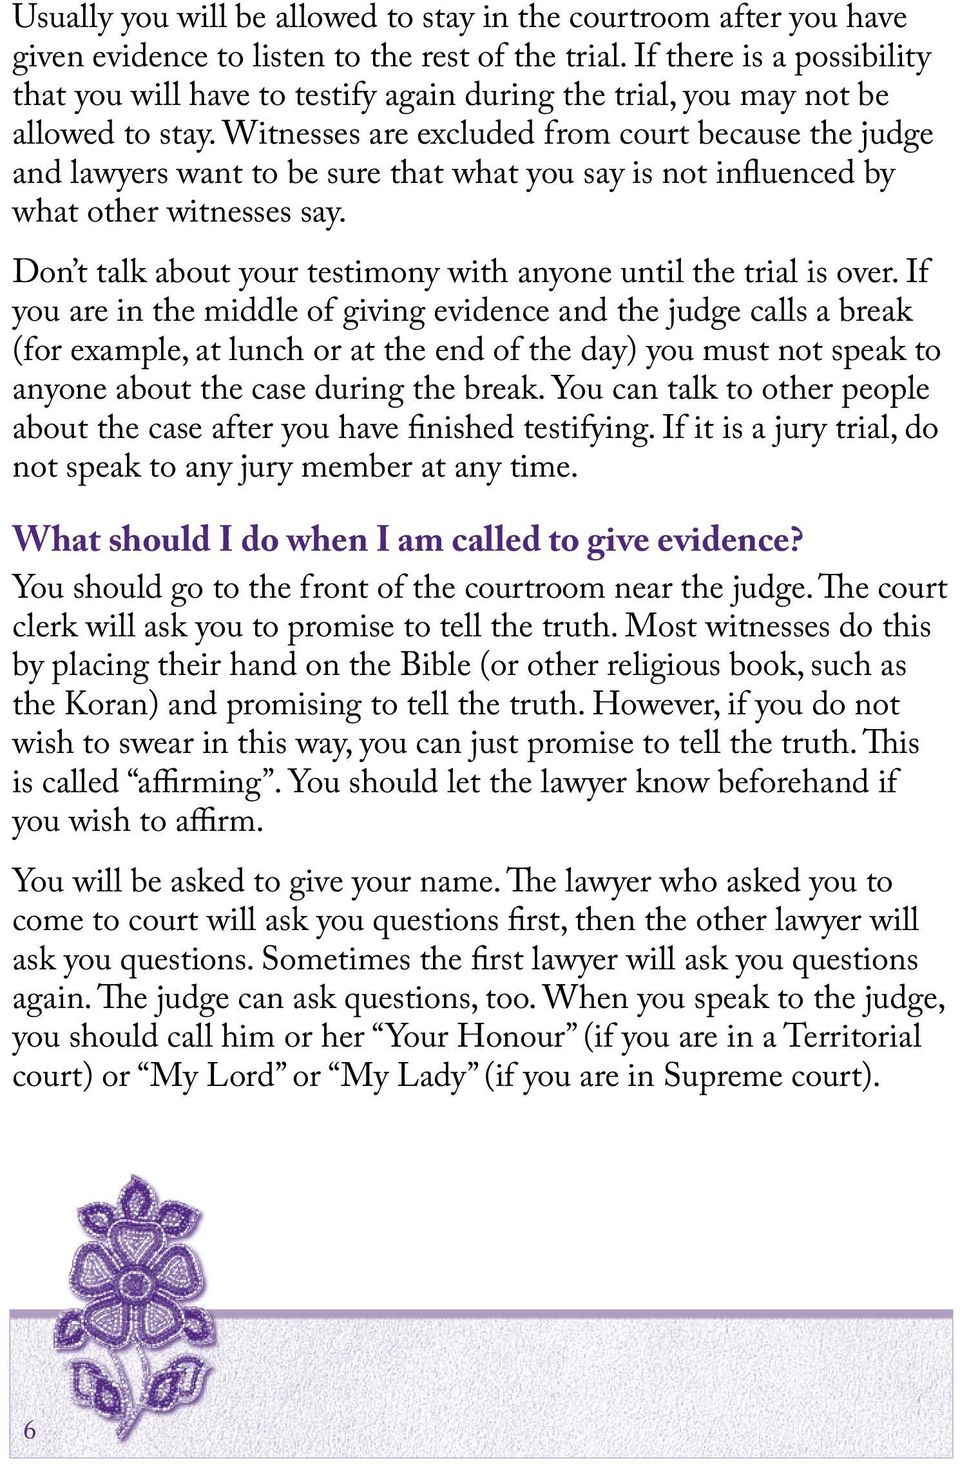 Witnesses are excluded from court because the judge and lawyers want to be sure that what you say is not influenced by what other witnesses say.